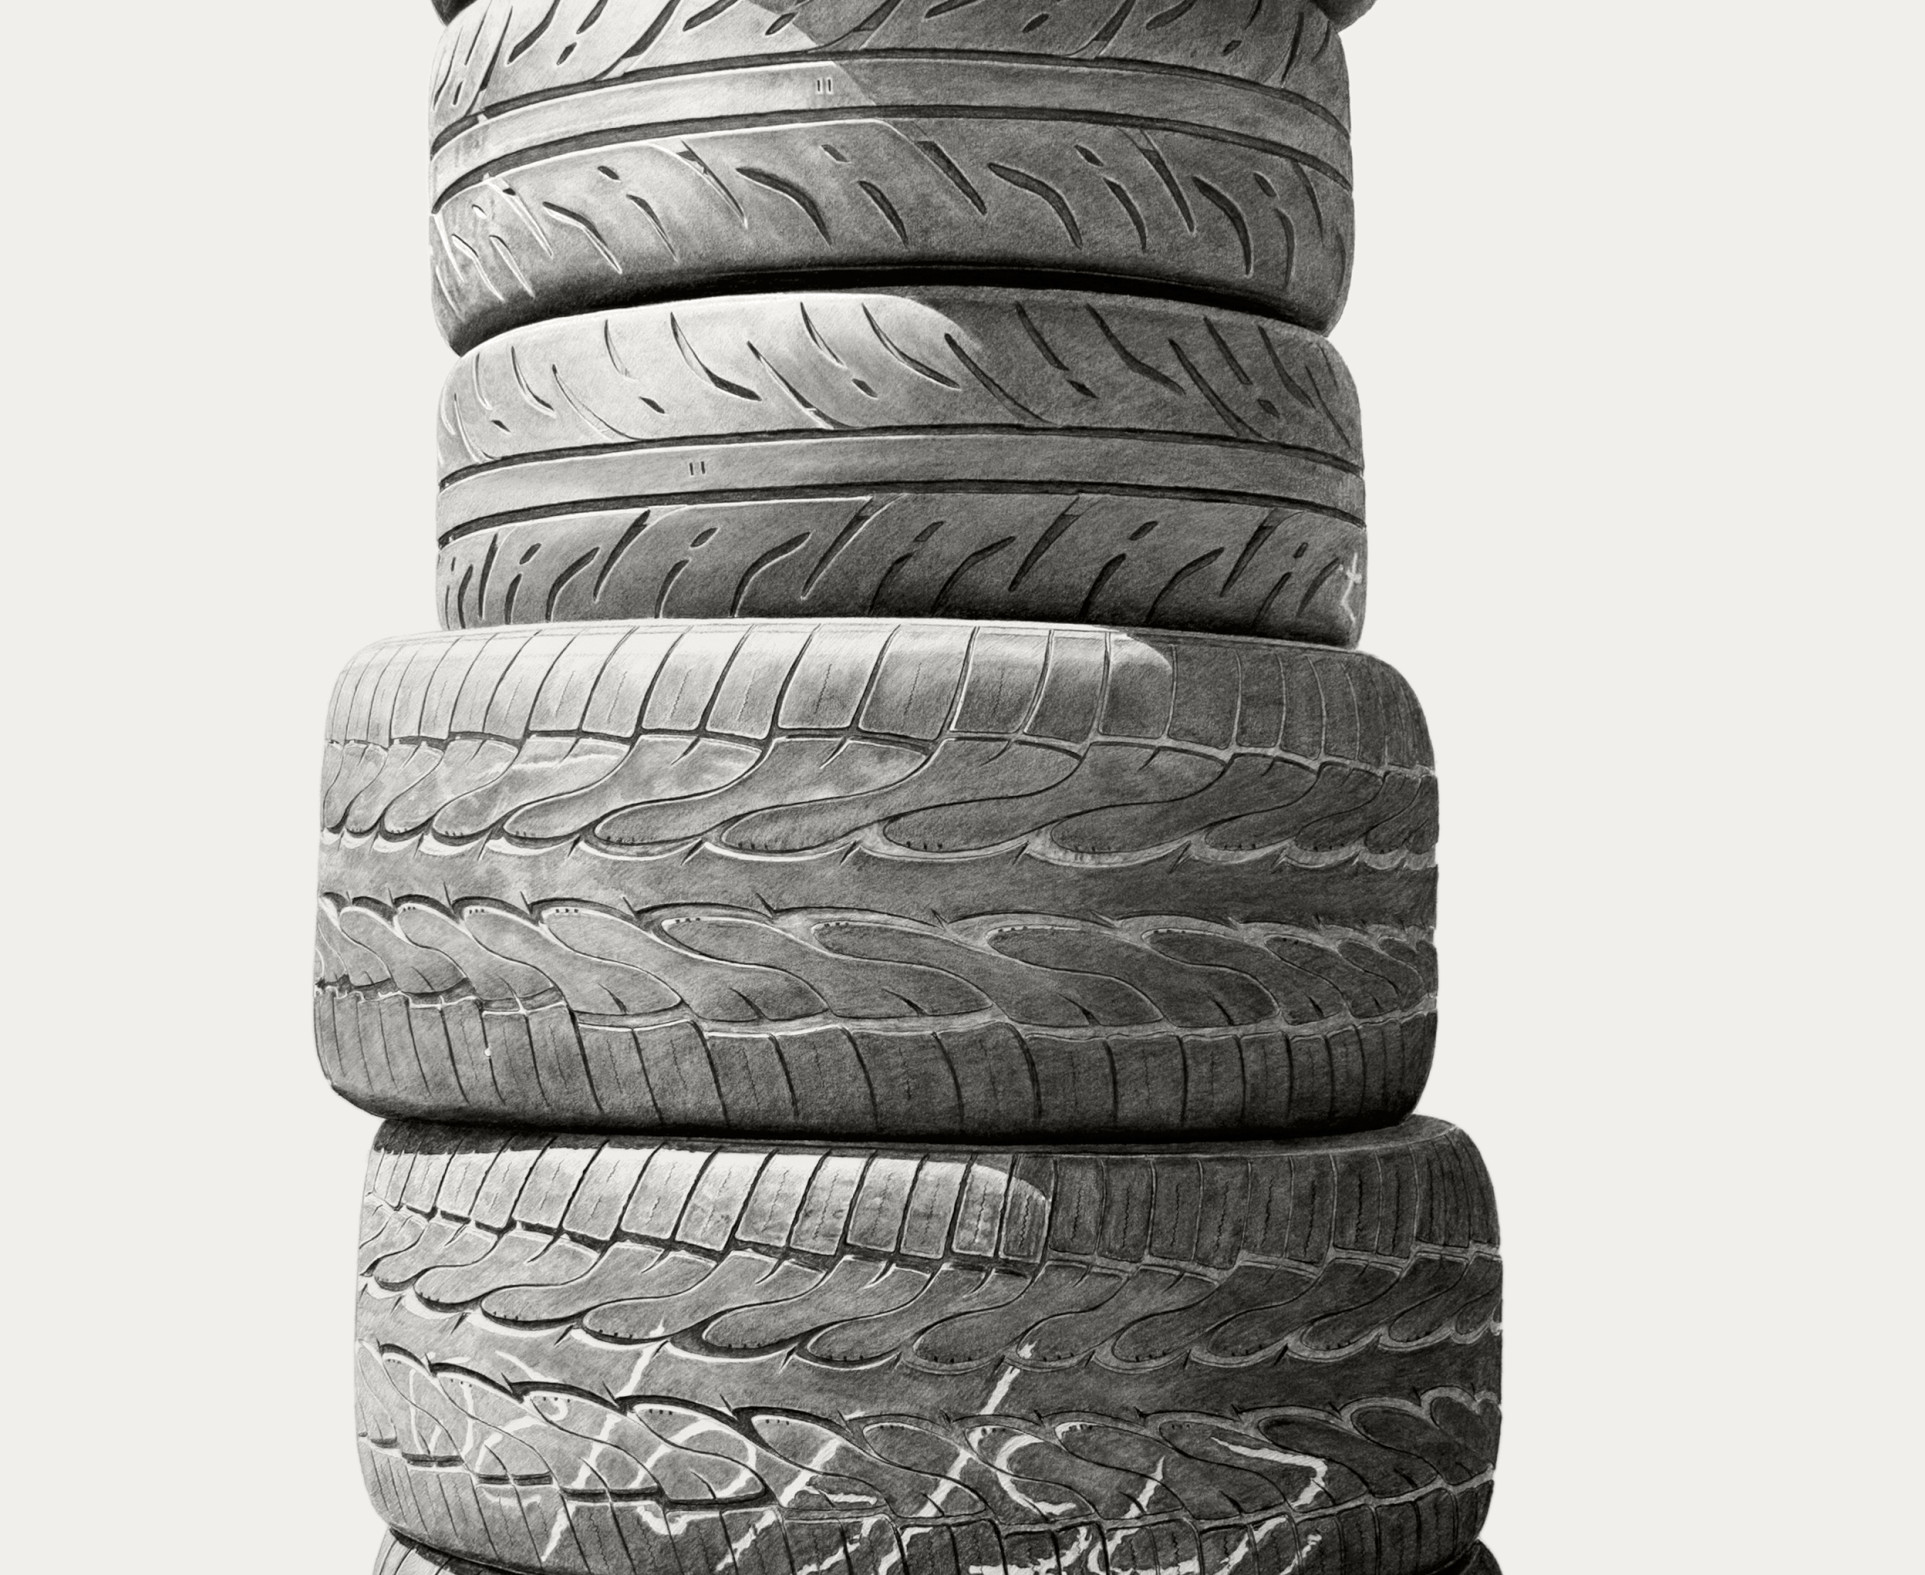 Joel Daniel Phillips, Neighborhood Still Life 4 (Tires), 2018